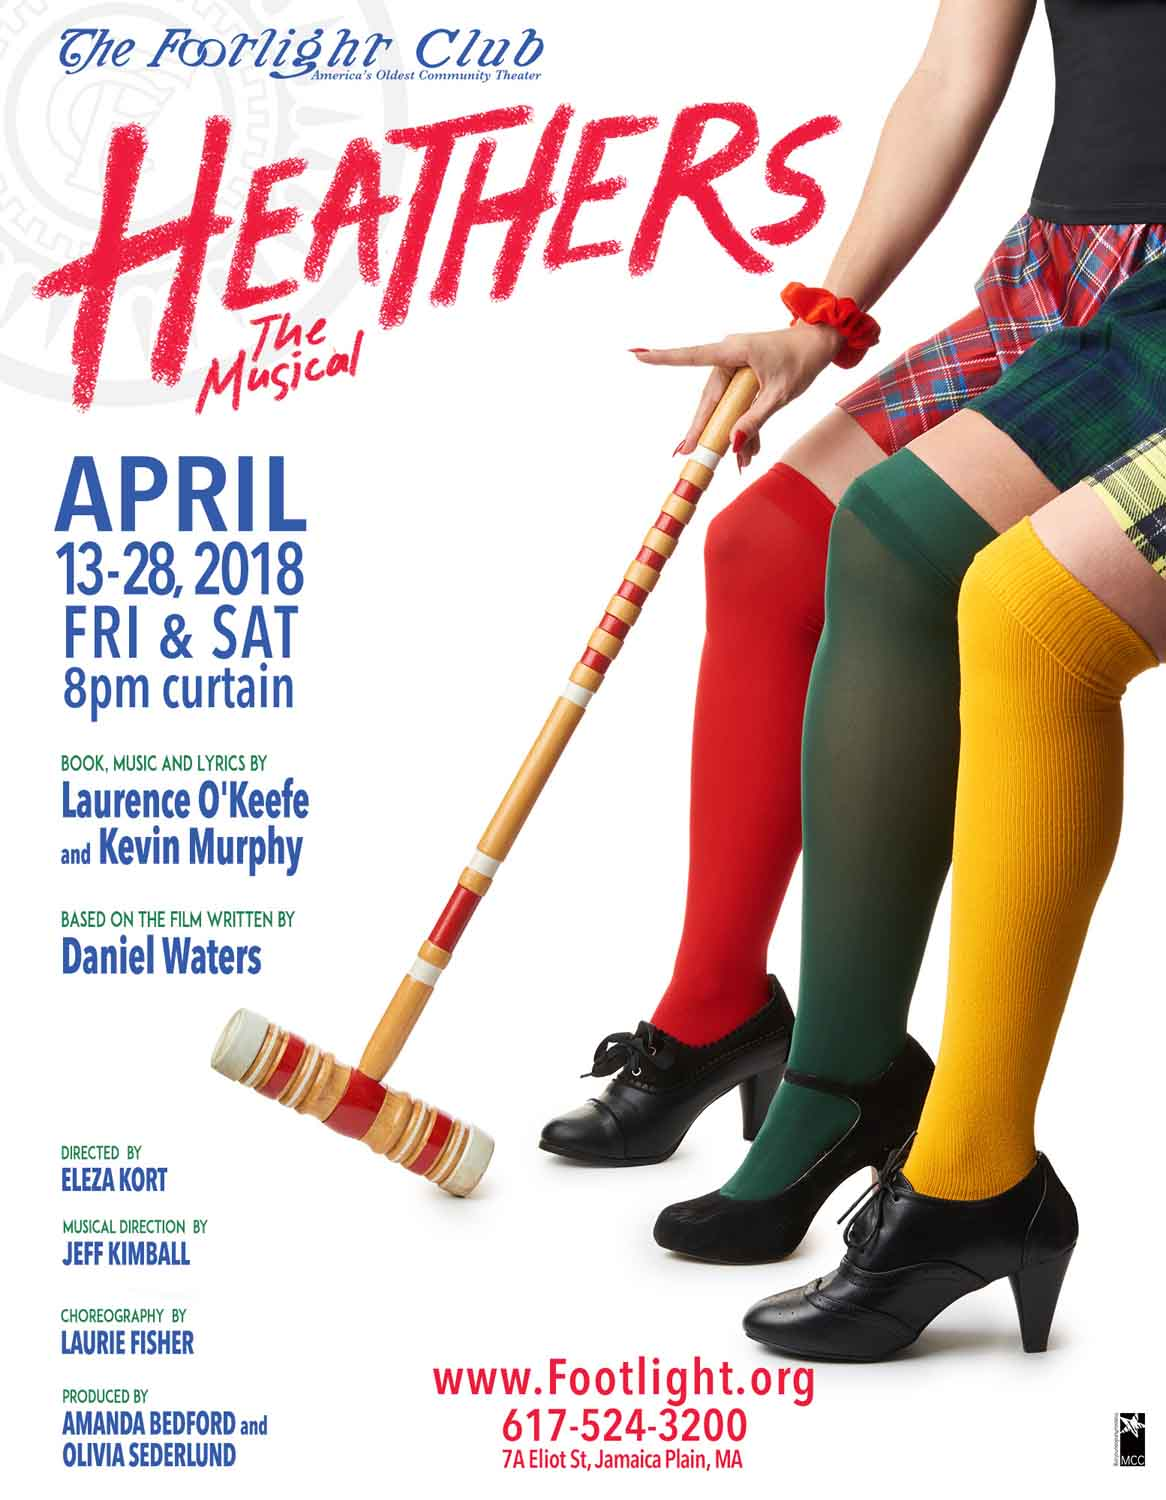 Heathers The Musical at Footlight.org Poster by McKeePhotography.com